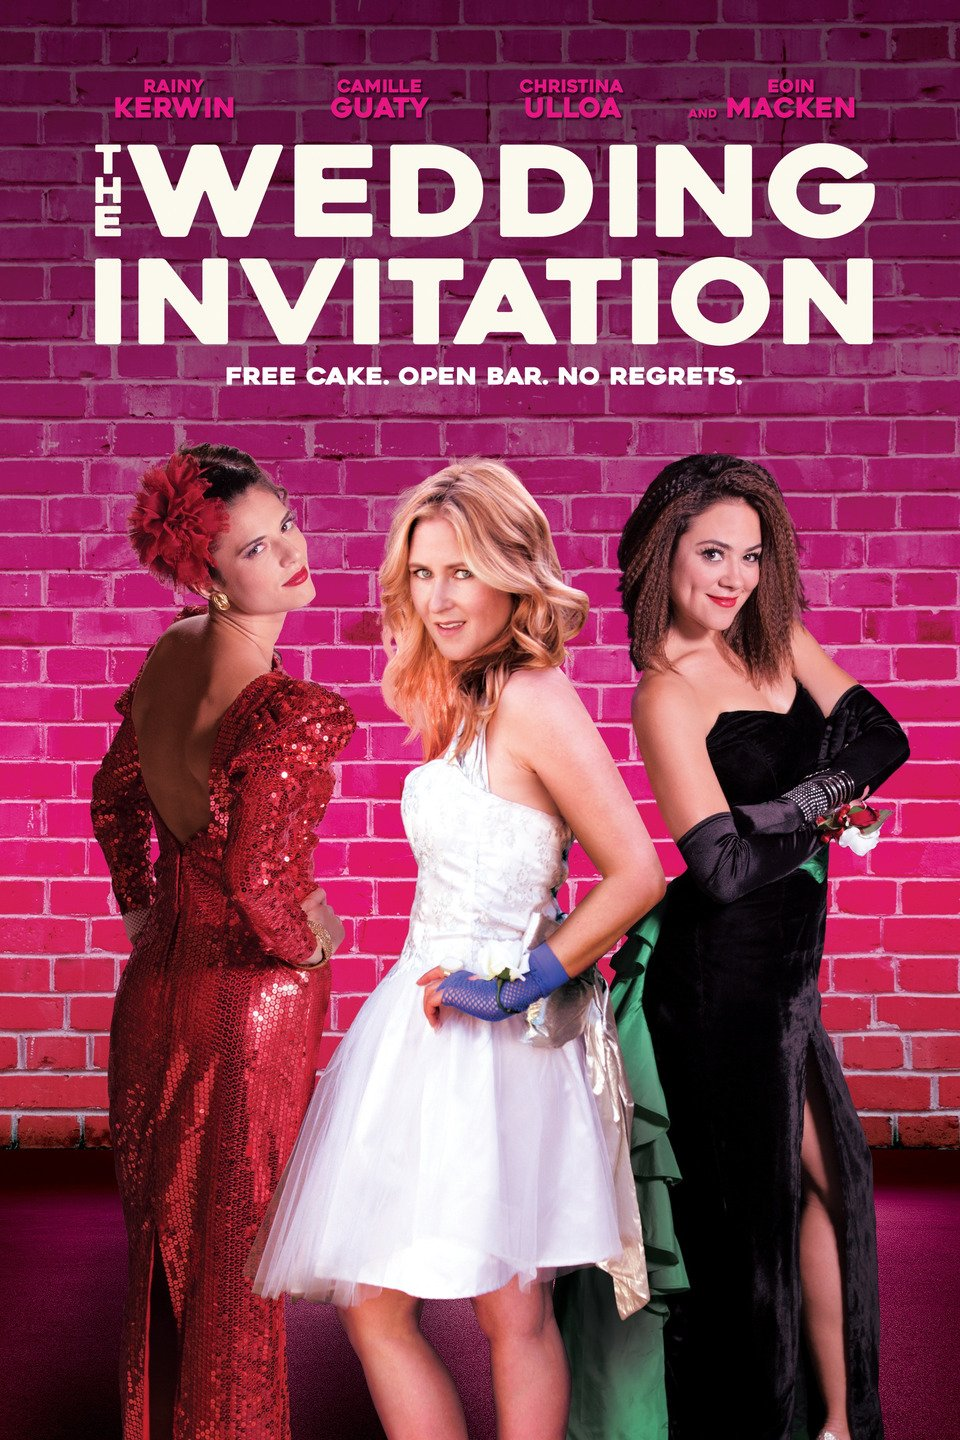 7b395aa106 A last minute invitation to an 80 s prom-themed wedding puts three best  friends in a desperate tailspin to land dates. Their mission